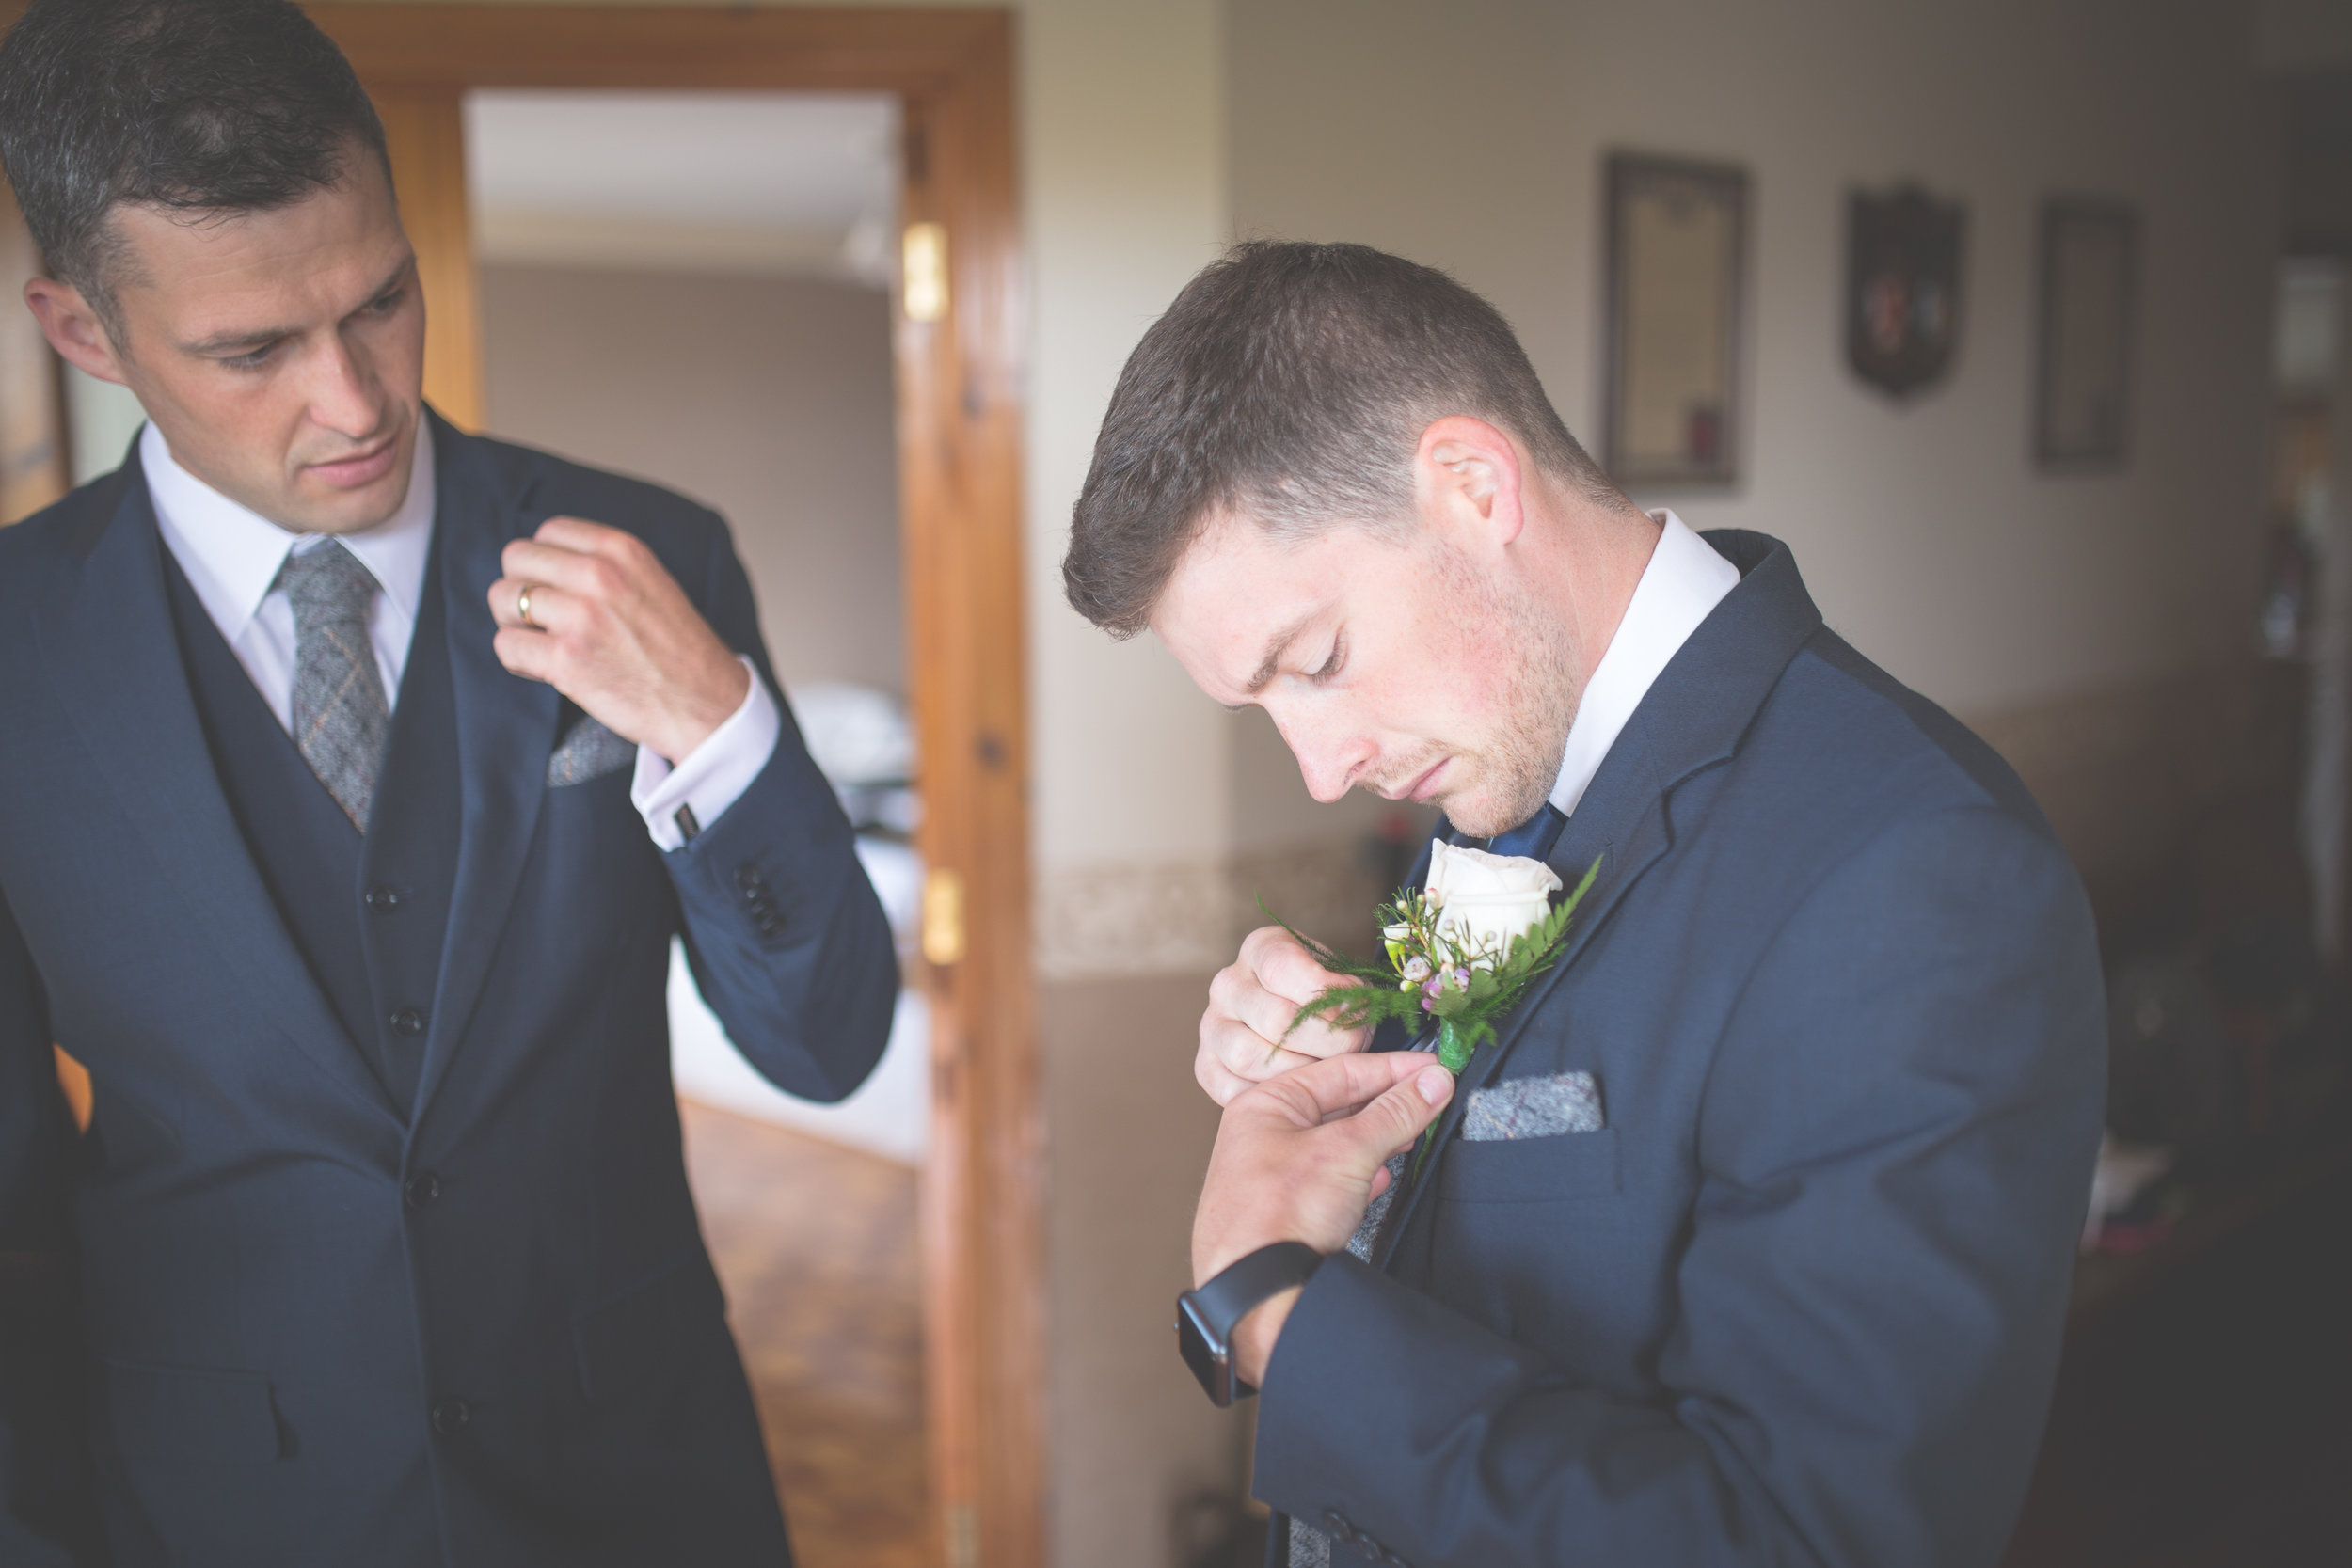 Brian McEwan Wedding Photography | Carol-Anne & Sean | Groom & Groomsmen-4.jpg